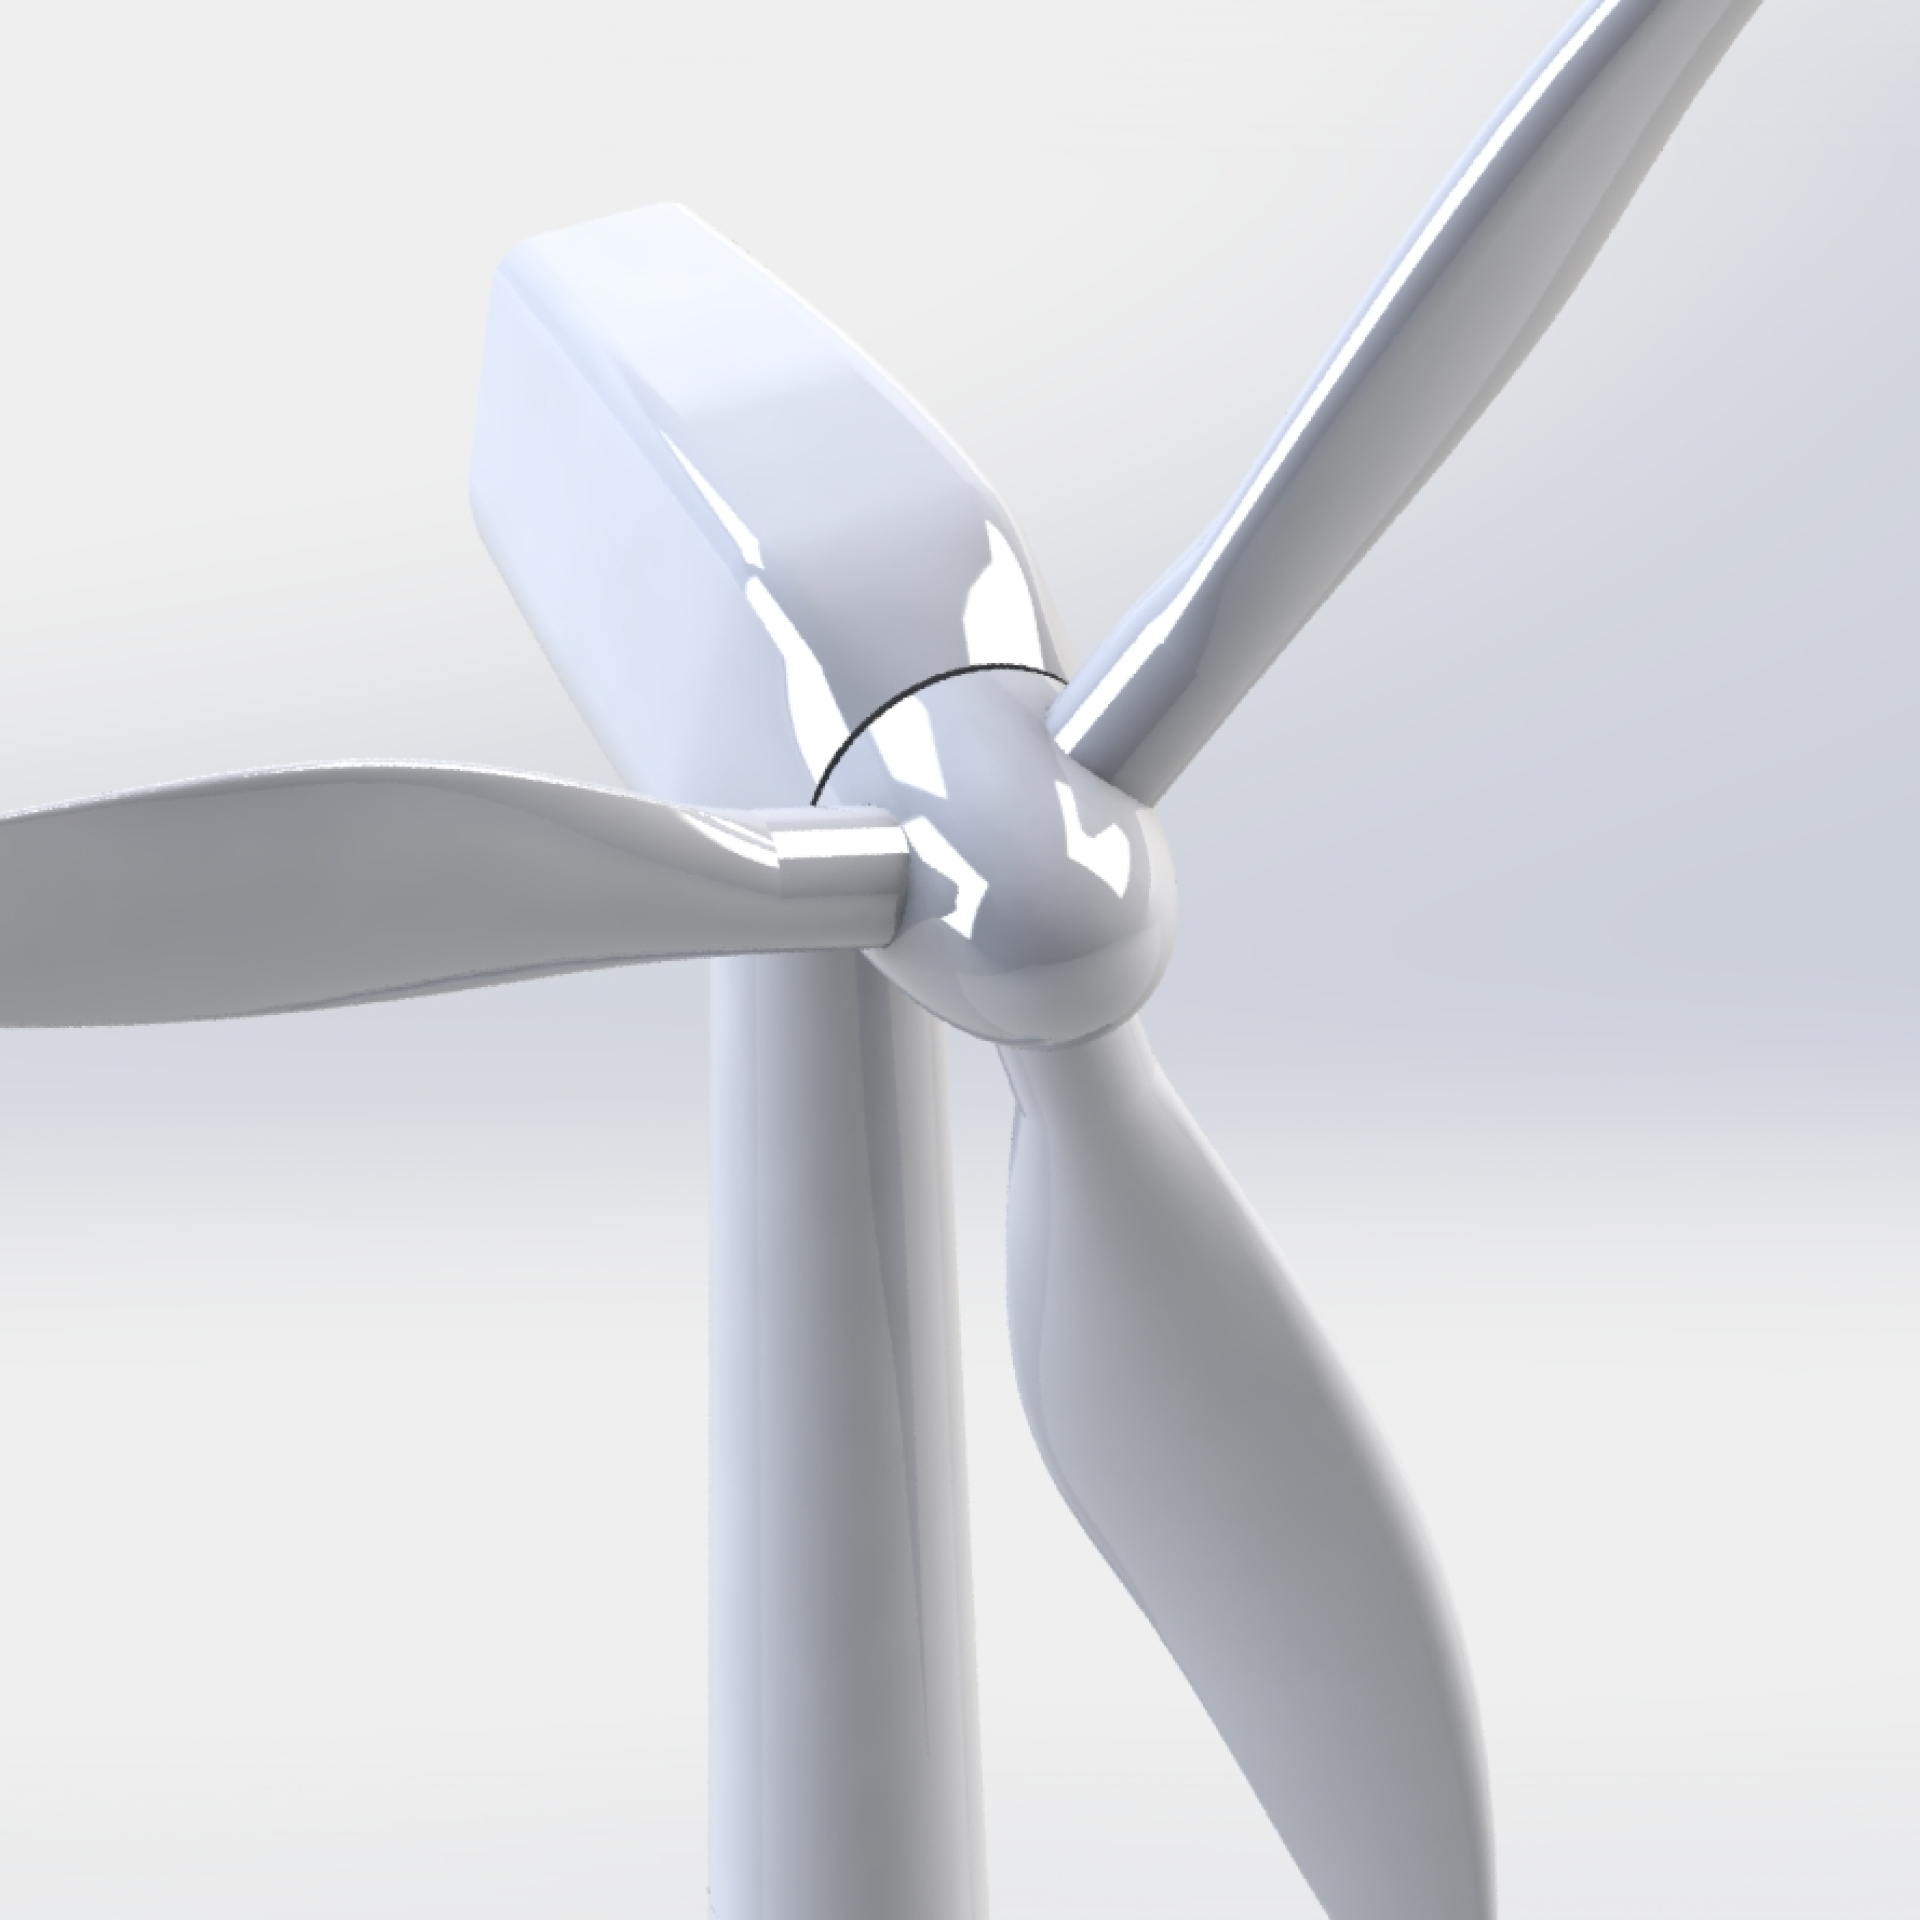 Wind Turbine Design on SolidWorks | Mark Anthony Bautista